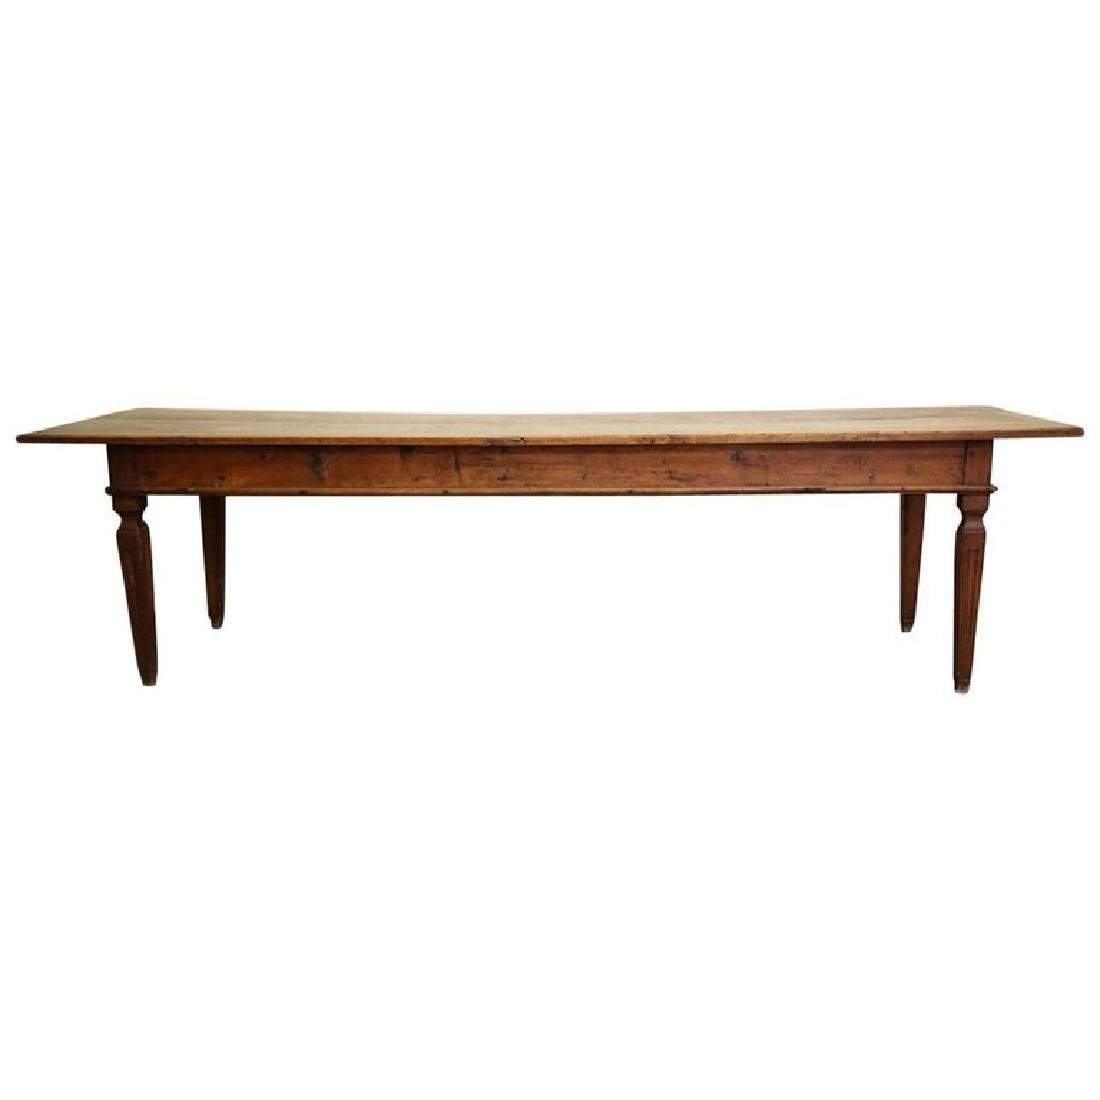 17th-18th Century Italian Long Rustic Dining Table with